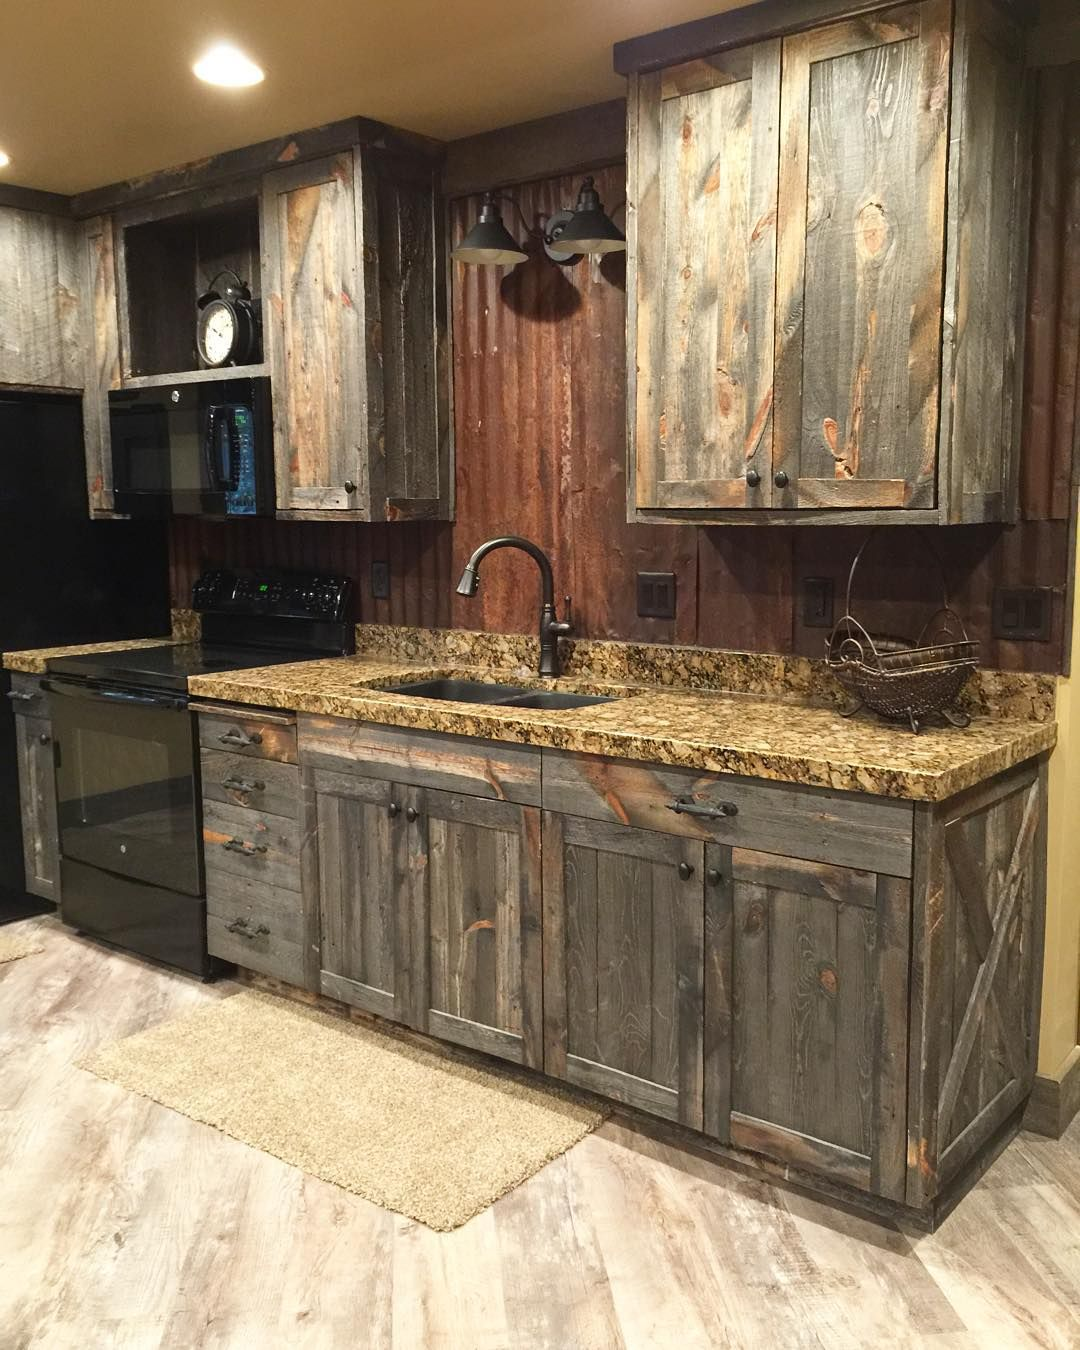 A Little Barnwood Kitchen Cabinets And Corrugated Steel Backsplash Love How Rustic Homey It Is Cabininthewoods